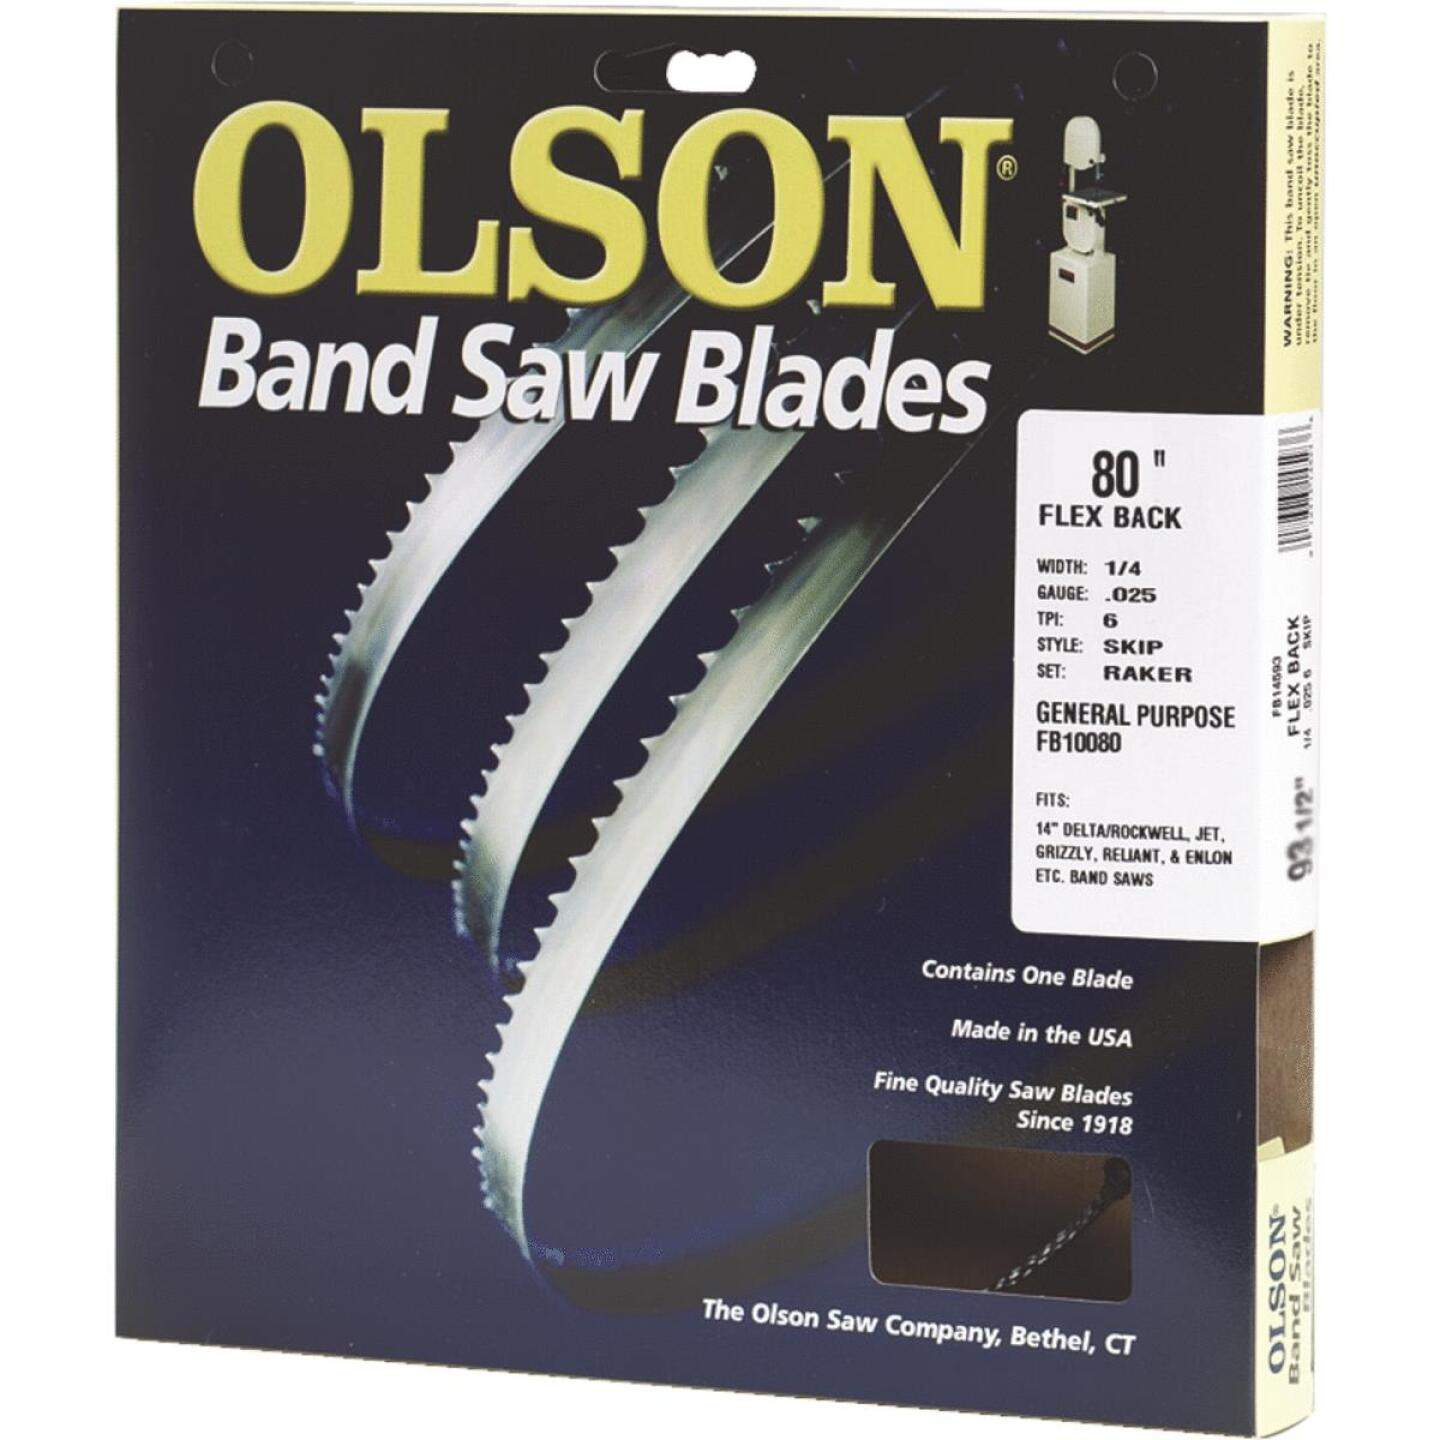 Olson 80 In. x 3/16 In. 10 TPI Regular Flex Back Band Saw Blade Image 1